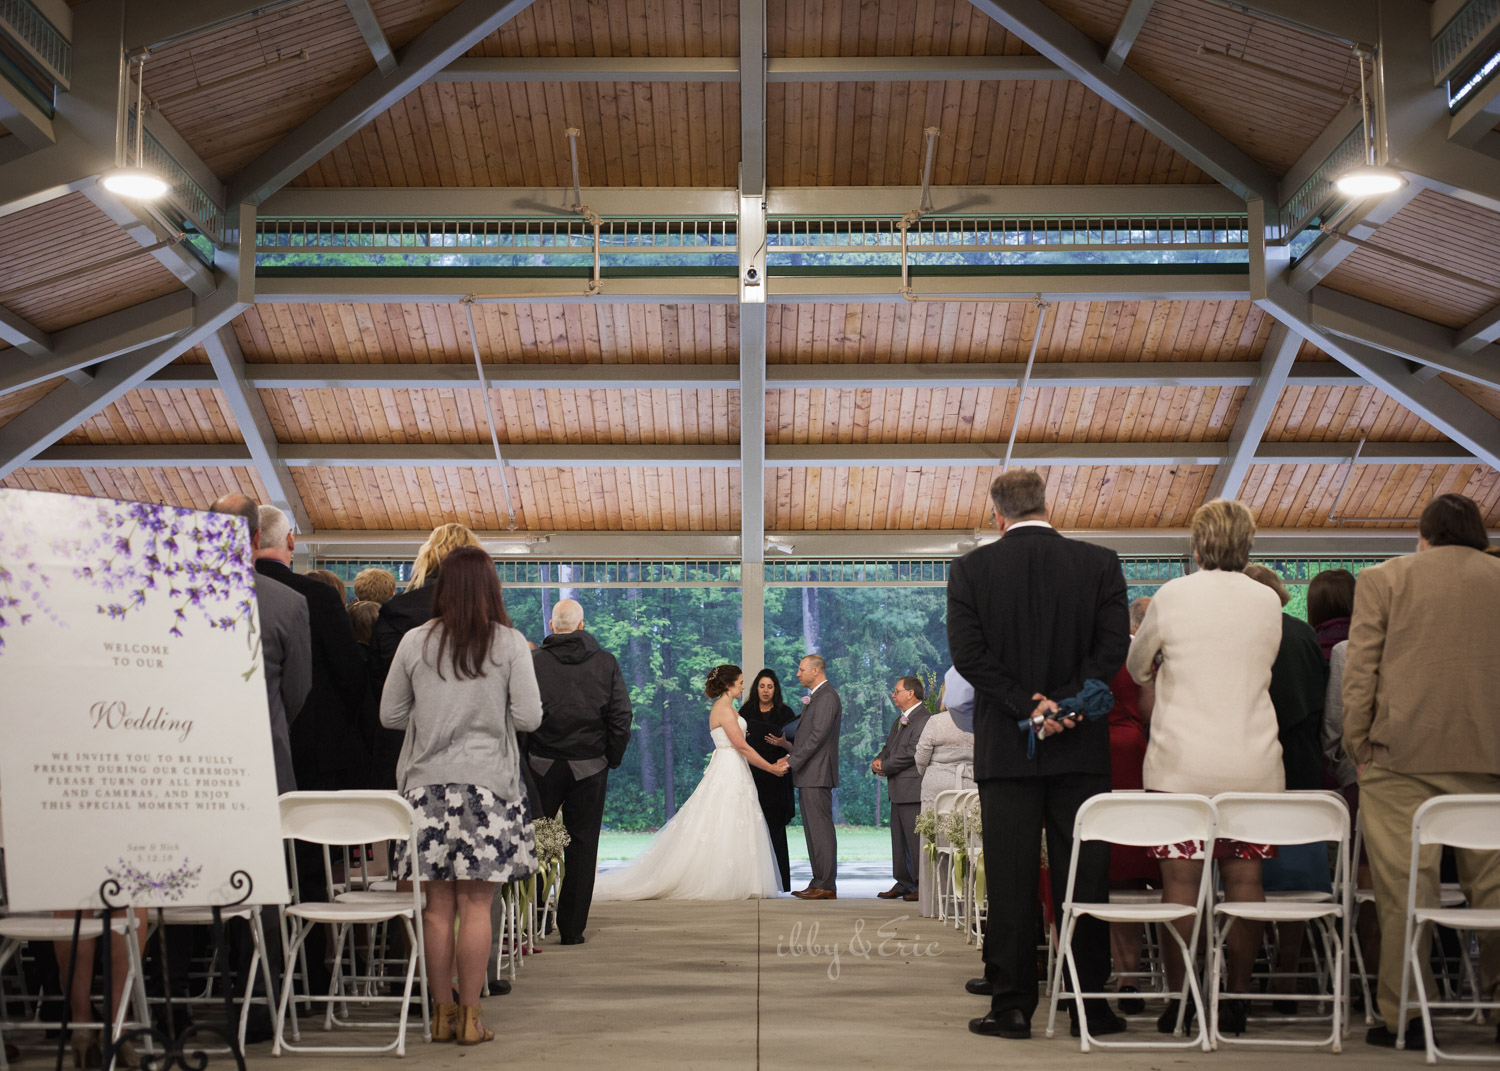 Wide angle photo of a bride and groom's wedding ceremony at the Beveridge Pavillion at Stanley Park.